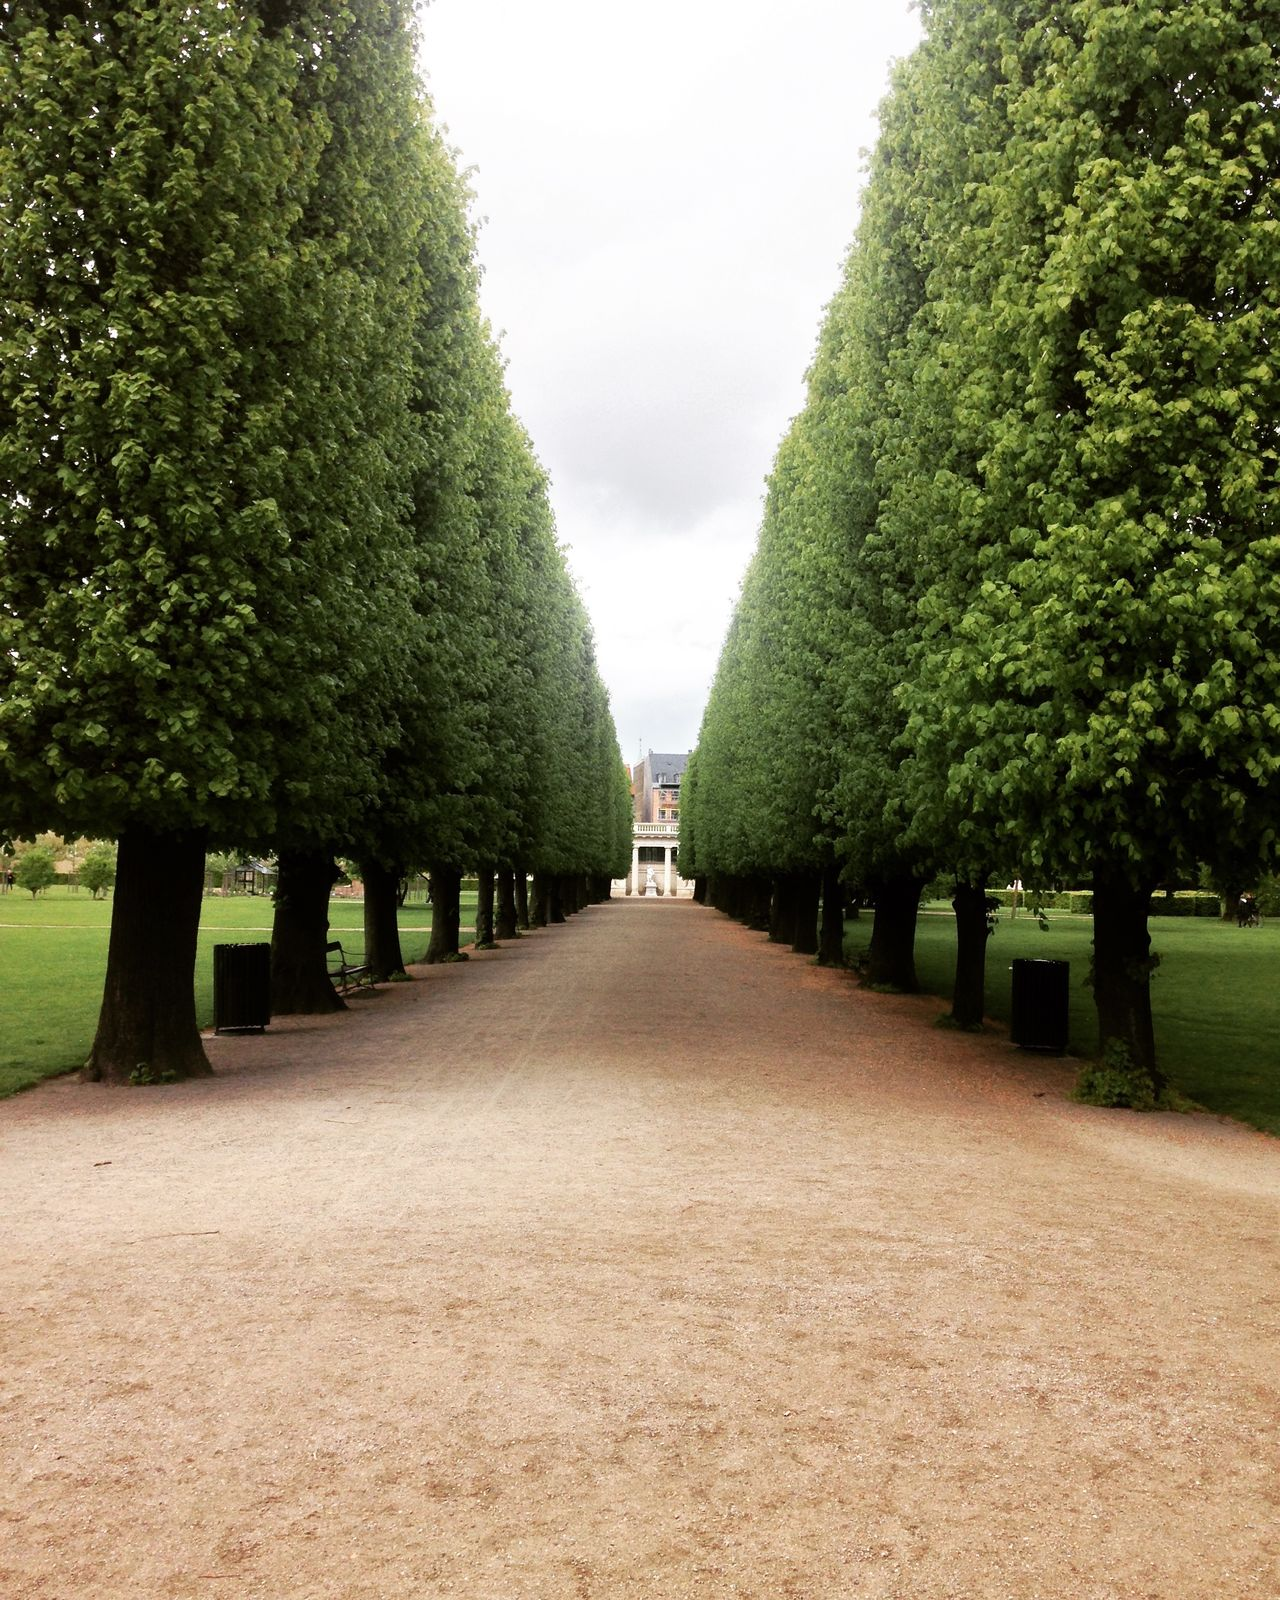 Copenhagen Danish Day Denmark Diminishing Perspective Empty Footpath Grass Green Color Growth In A Row Nature Park Park - Man Made Space Rosenborg Castle Rosenborg Slot Rosenborgcastlepark Sky The Way Forward Tranquil Scene Tranquility Tree Treelined Vanishing Point Walkway